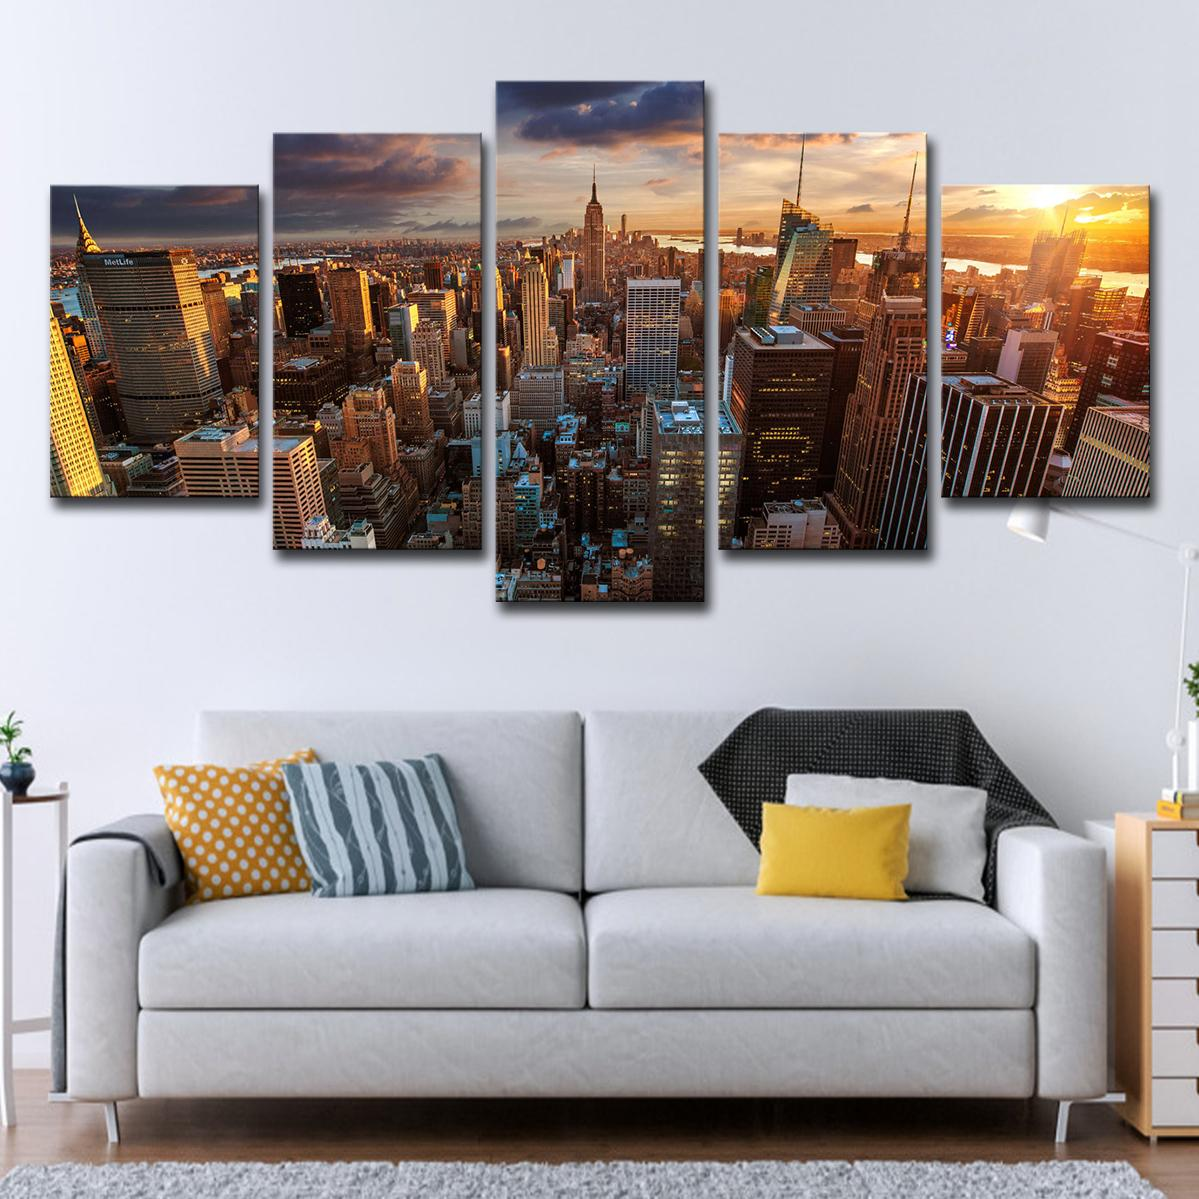 5 Pcs Prints Pictures Modular Canvas Poster Wall Art Framework 5 Pieces New York City Building Sunset Landscape Painting Home Decor